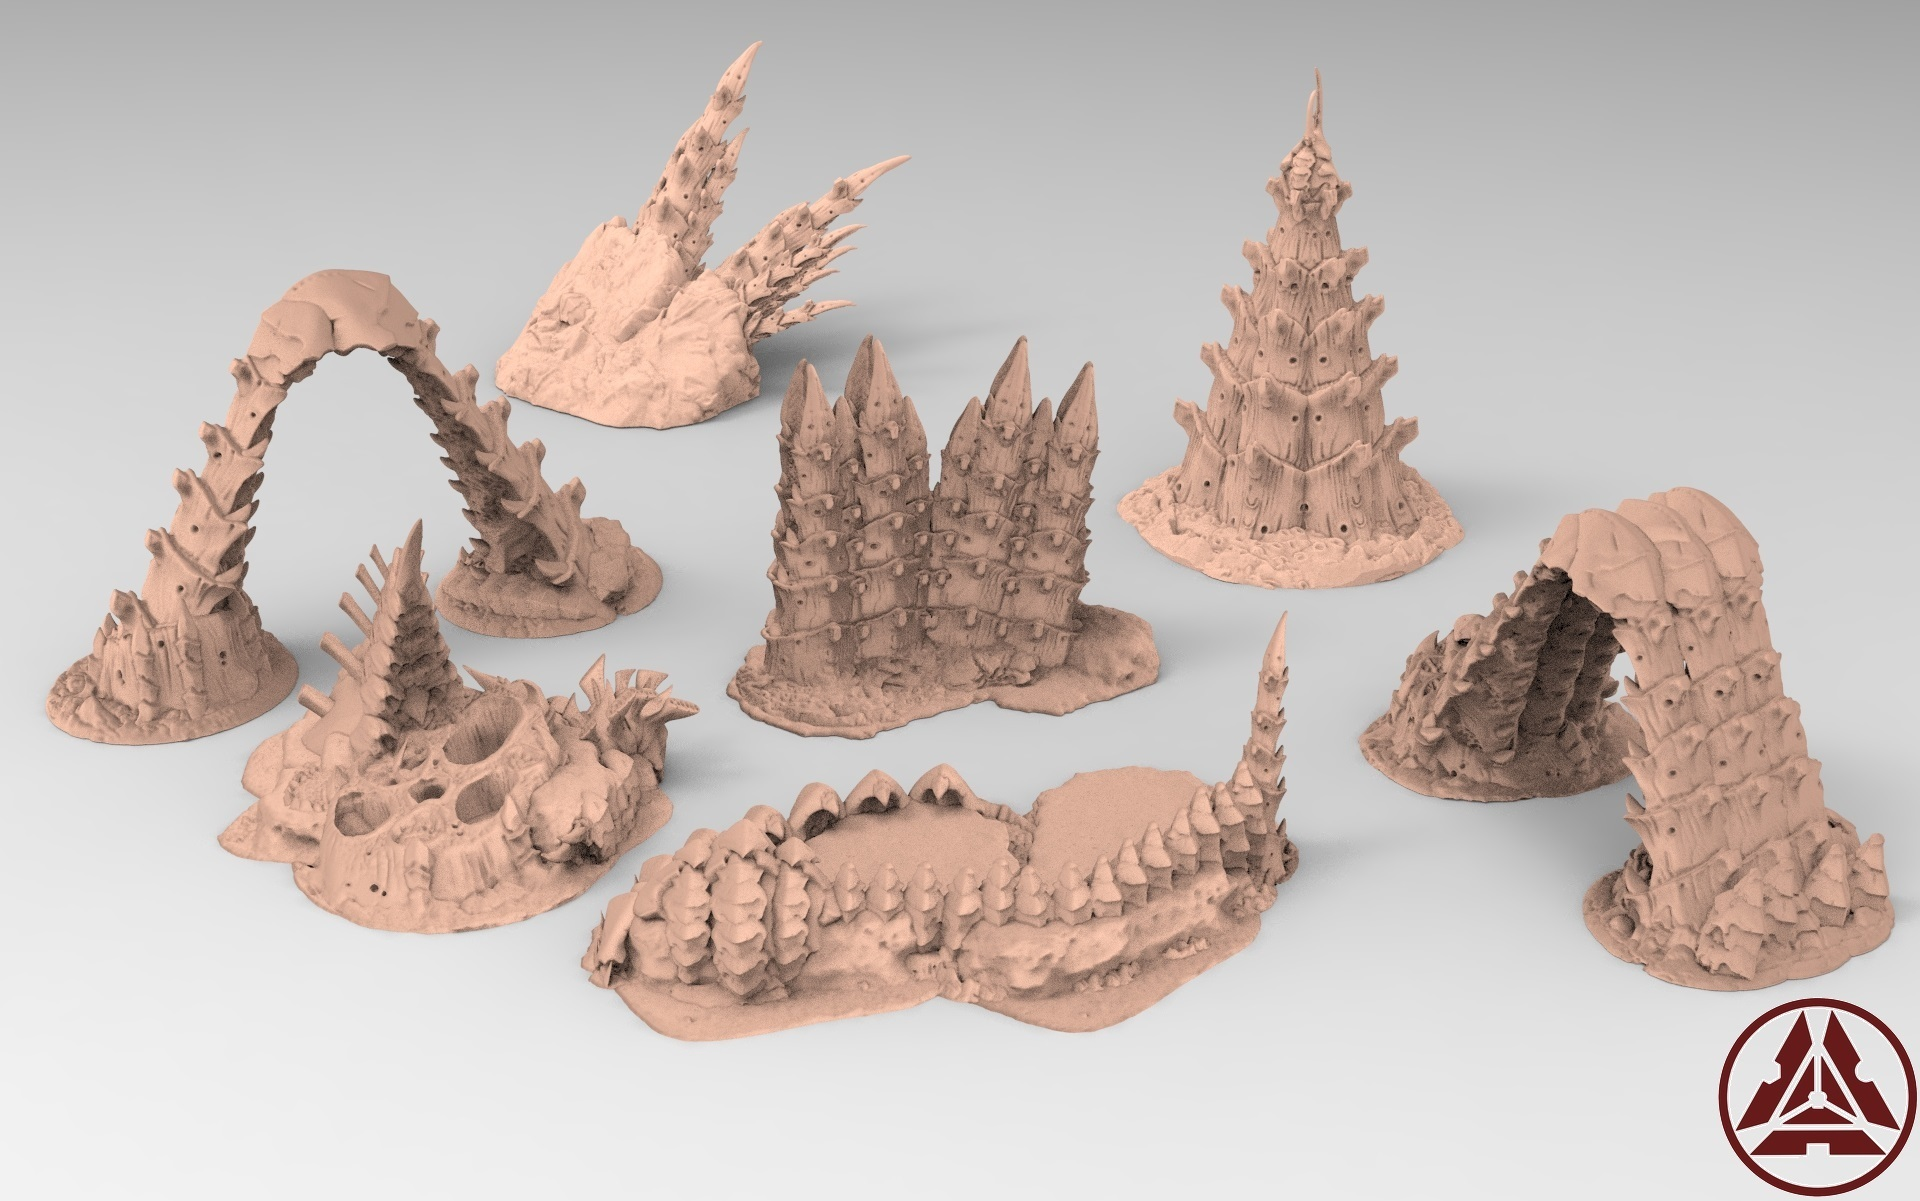 7.jpg Download free STL file Tyty bug party terrain remix Part 7 Free 3D print model • Object to 3D print, Alario